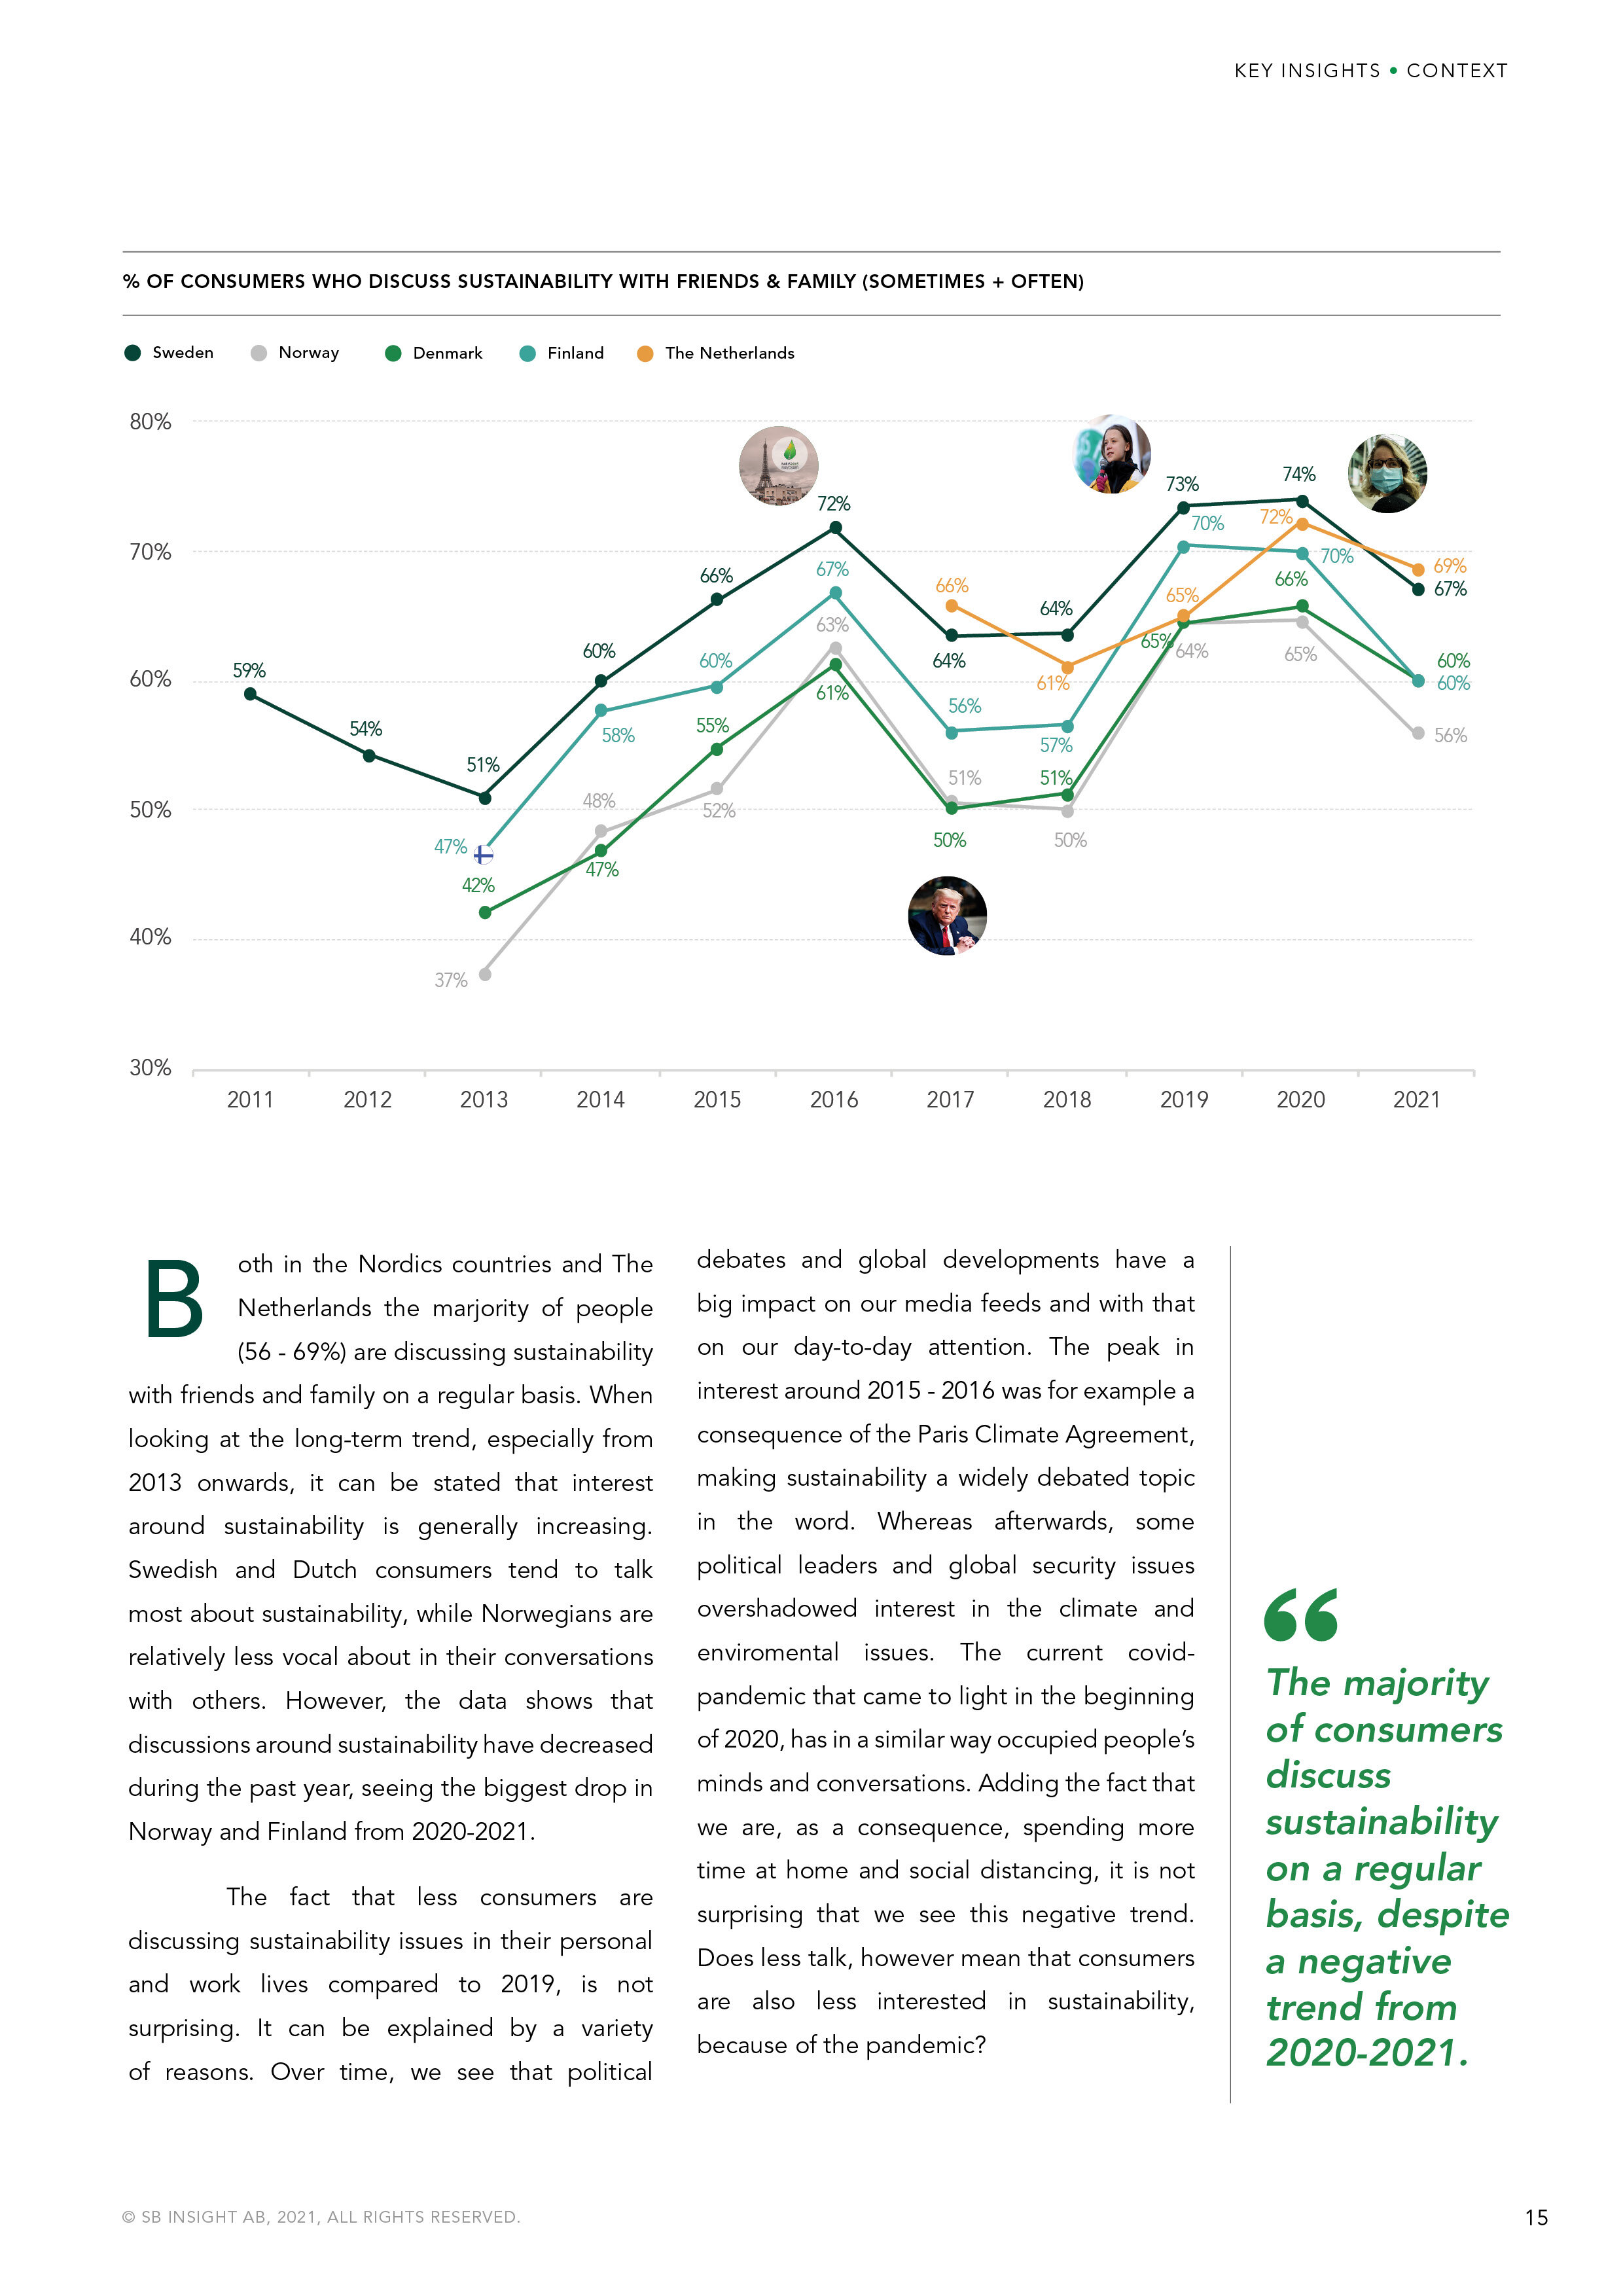 FI_Official Report_2021_Sustainable Brand Index15.jpg